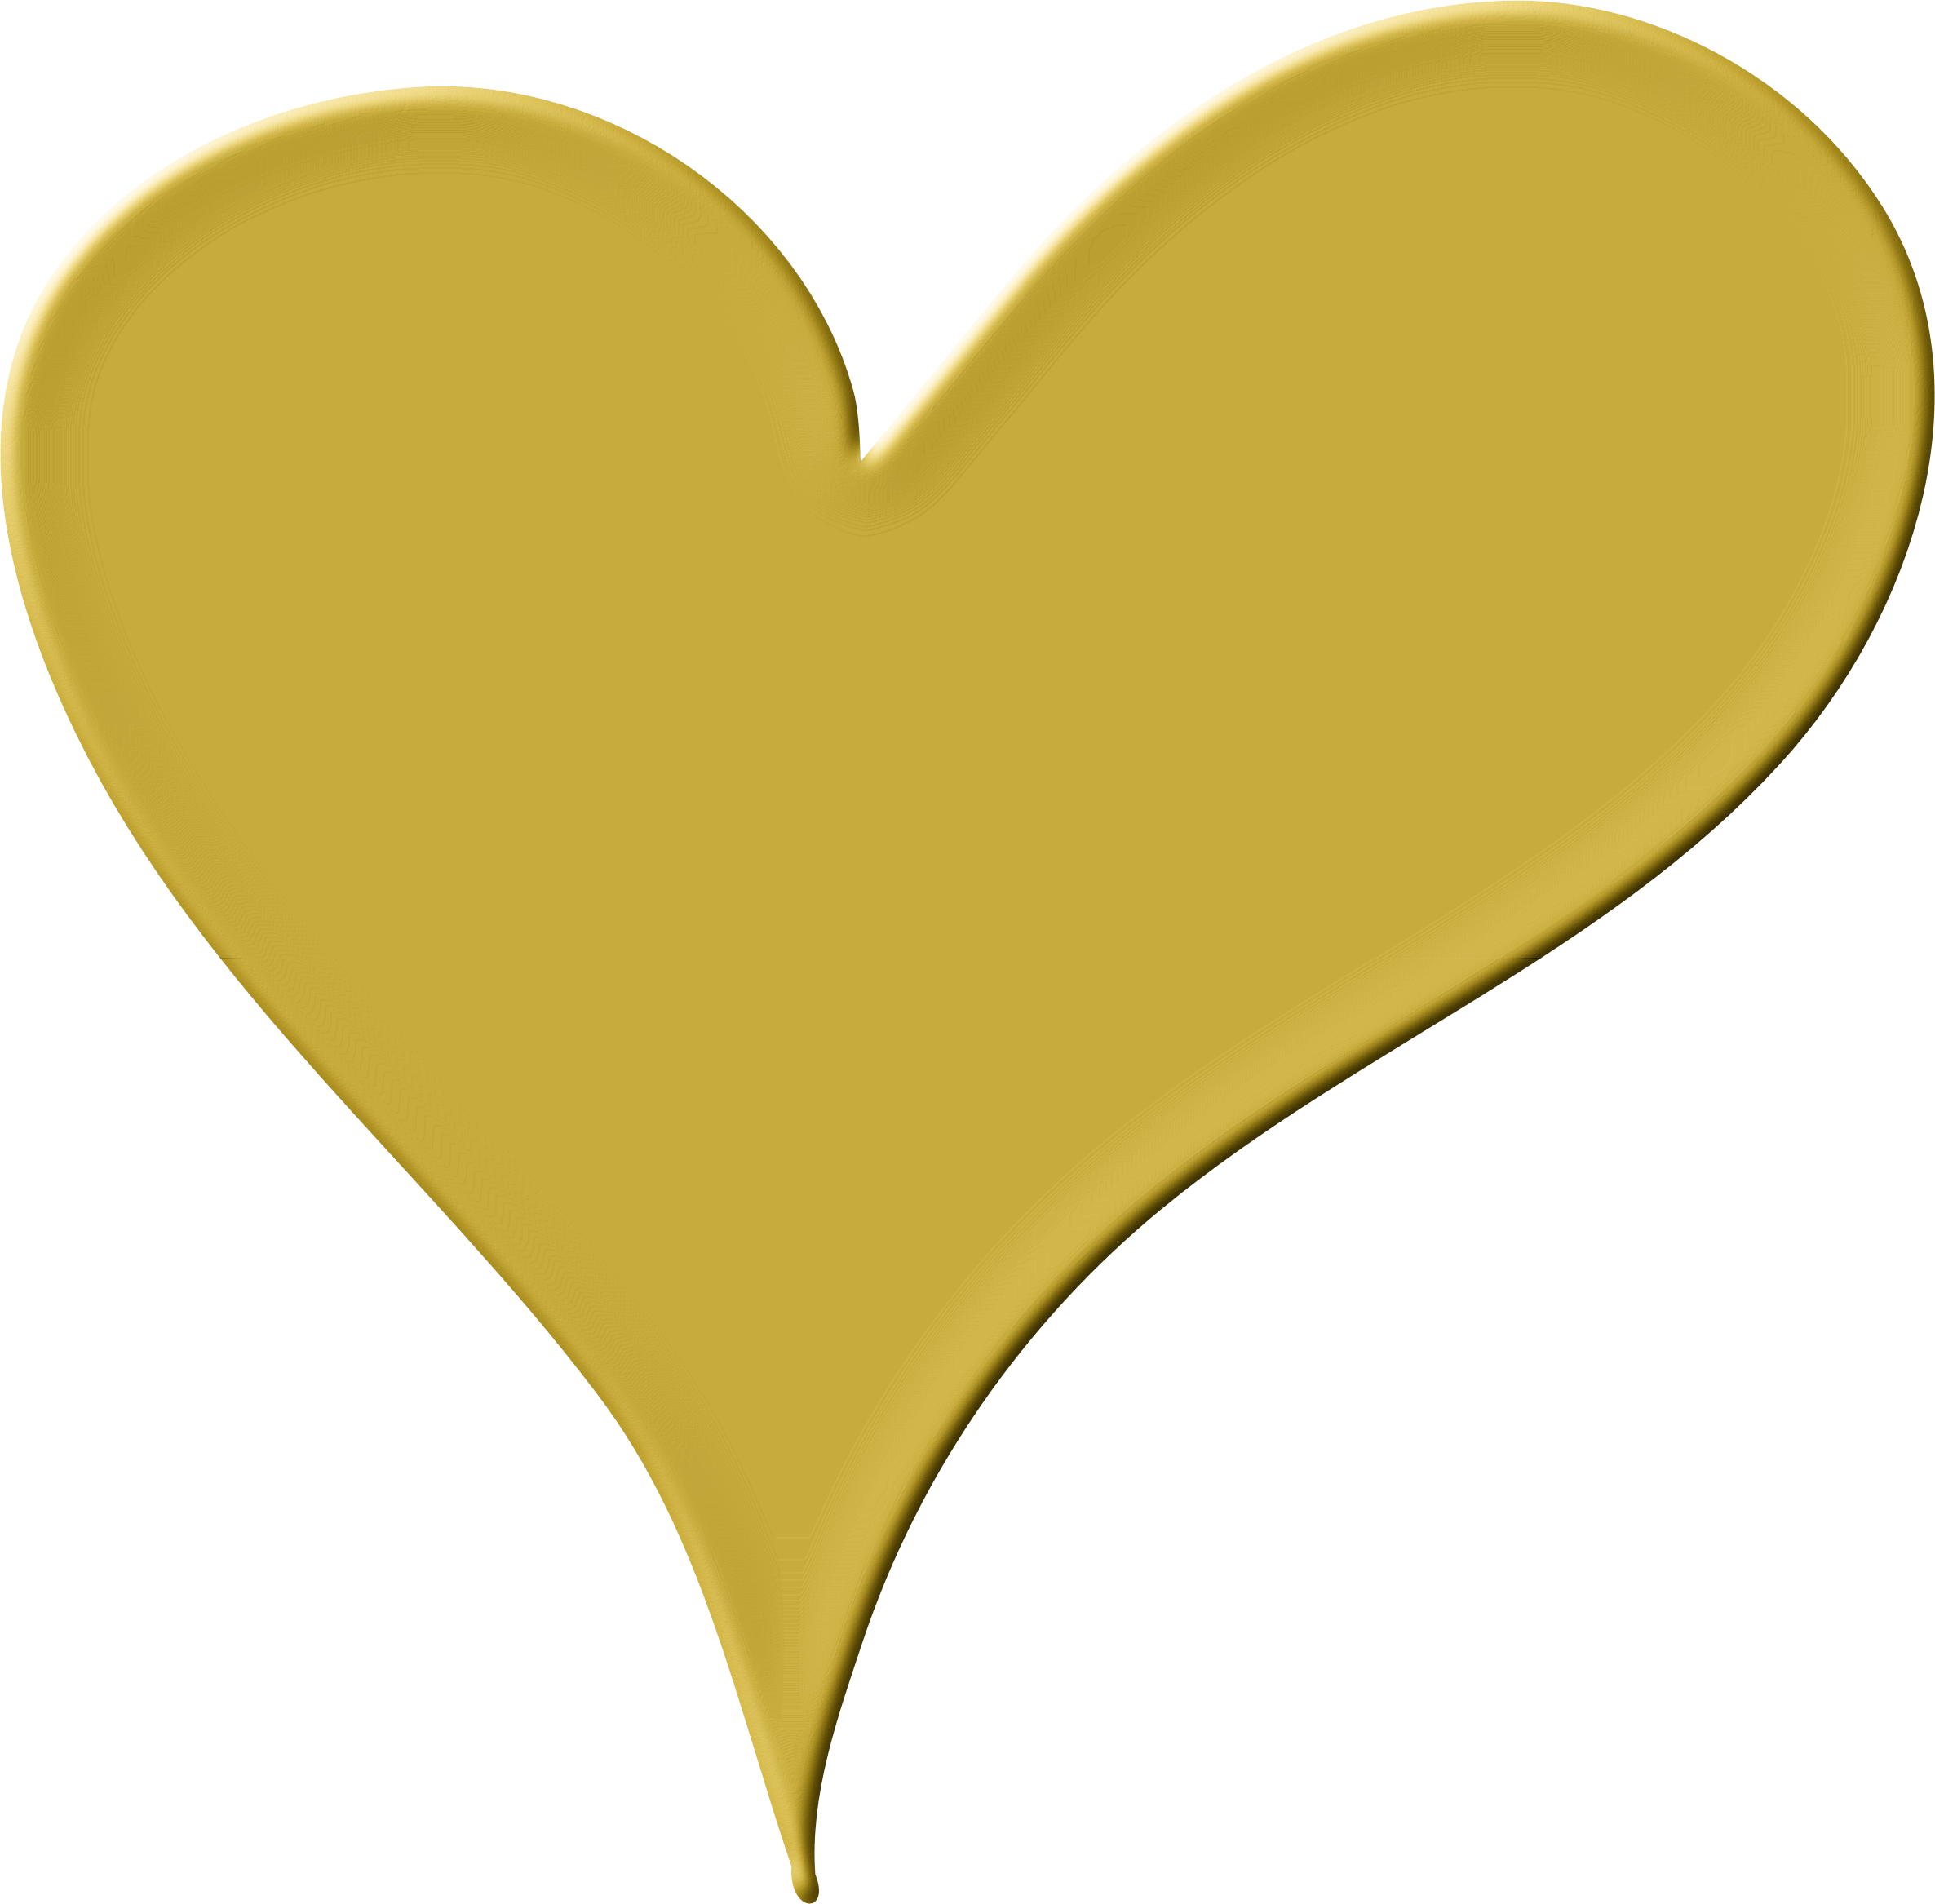 Gold Heart Images - Reverse Search